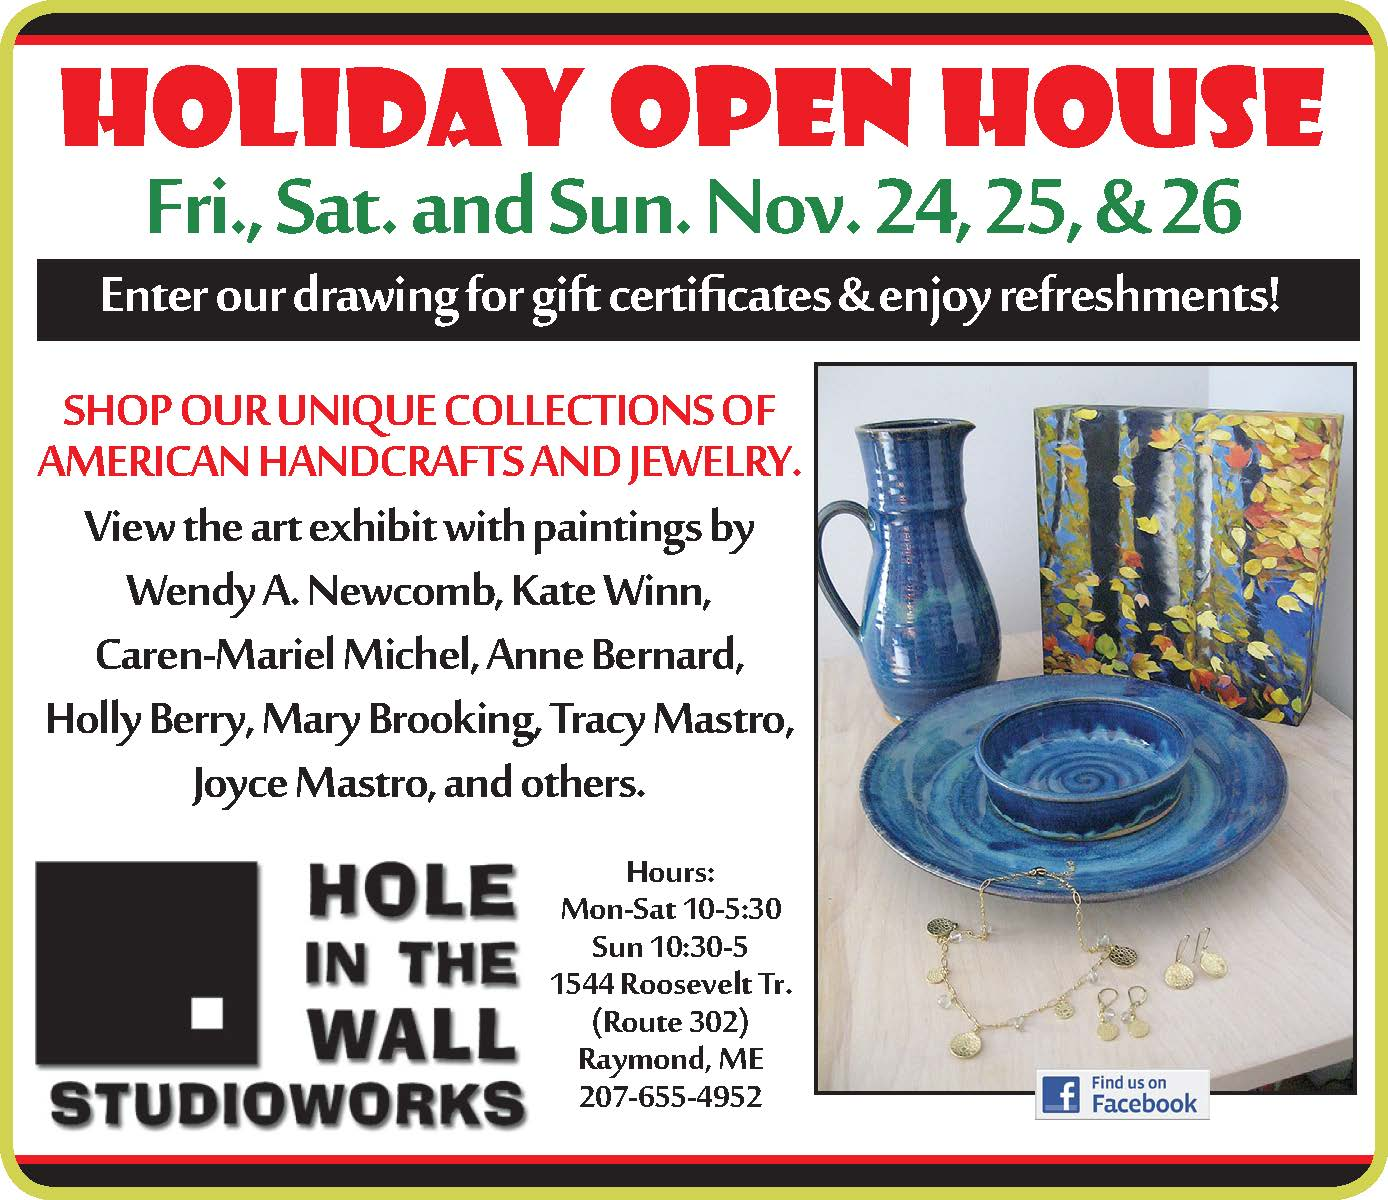 https://www.facebook.com/Hole-in-the-Wall-Studioworks-287969967880120/?fref=ts